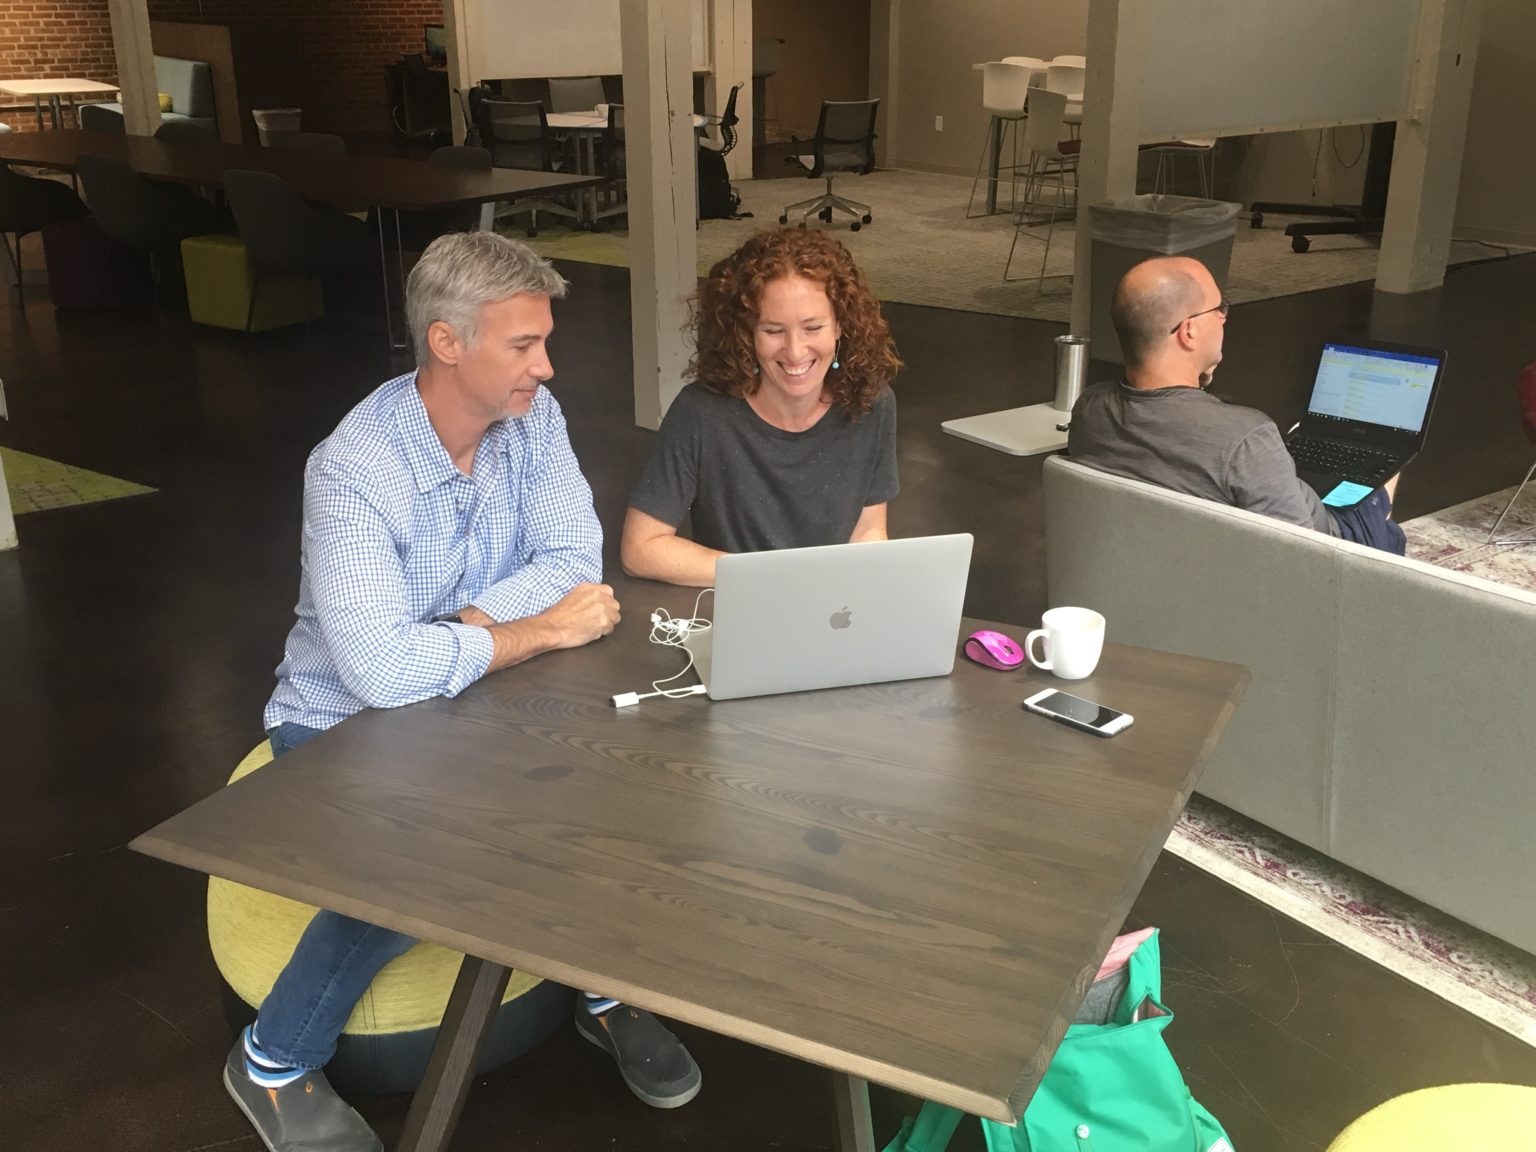 Two adults sitting at a table working on a laptop